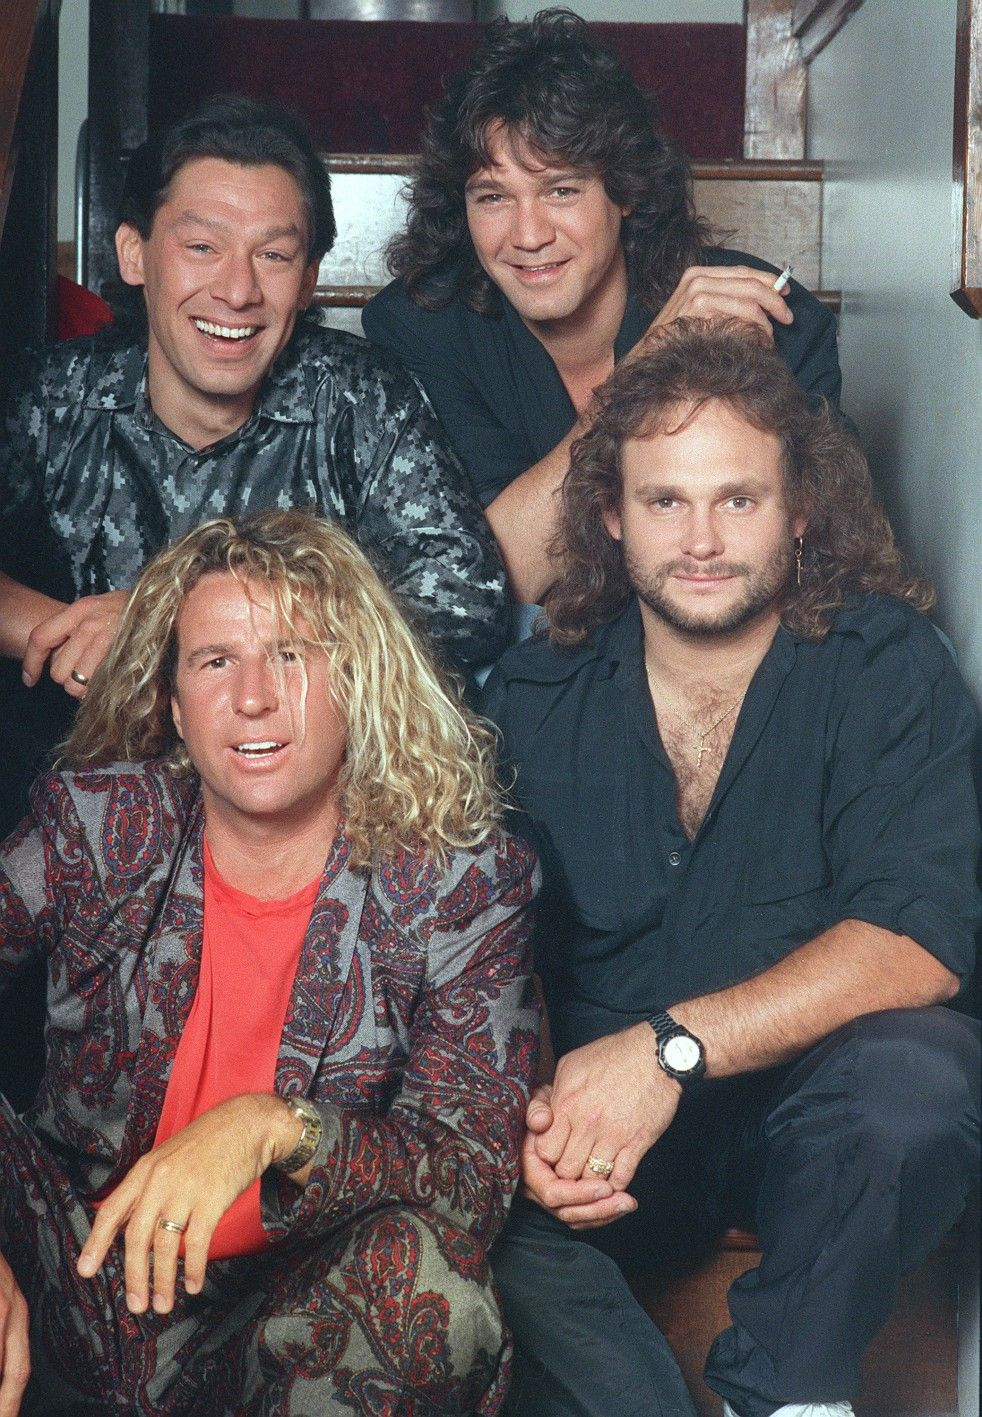 Sammy No Offense But Vh Without Diamond Dave Just Annoyed Me Van Halen Eddie Van Halen Red Rocker